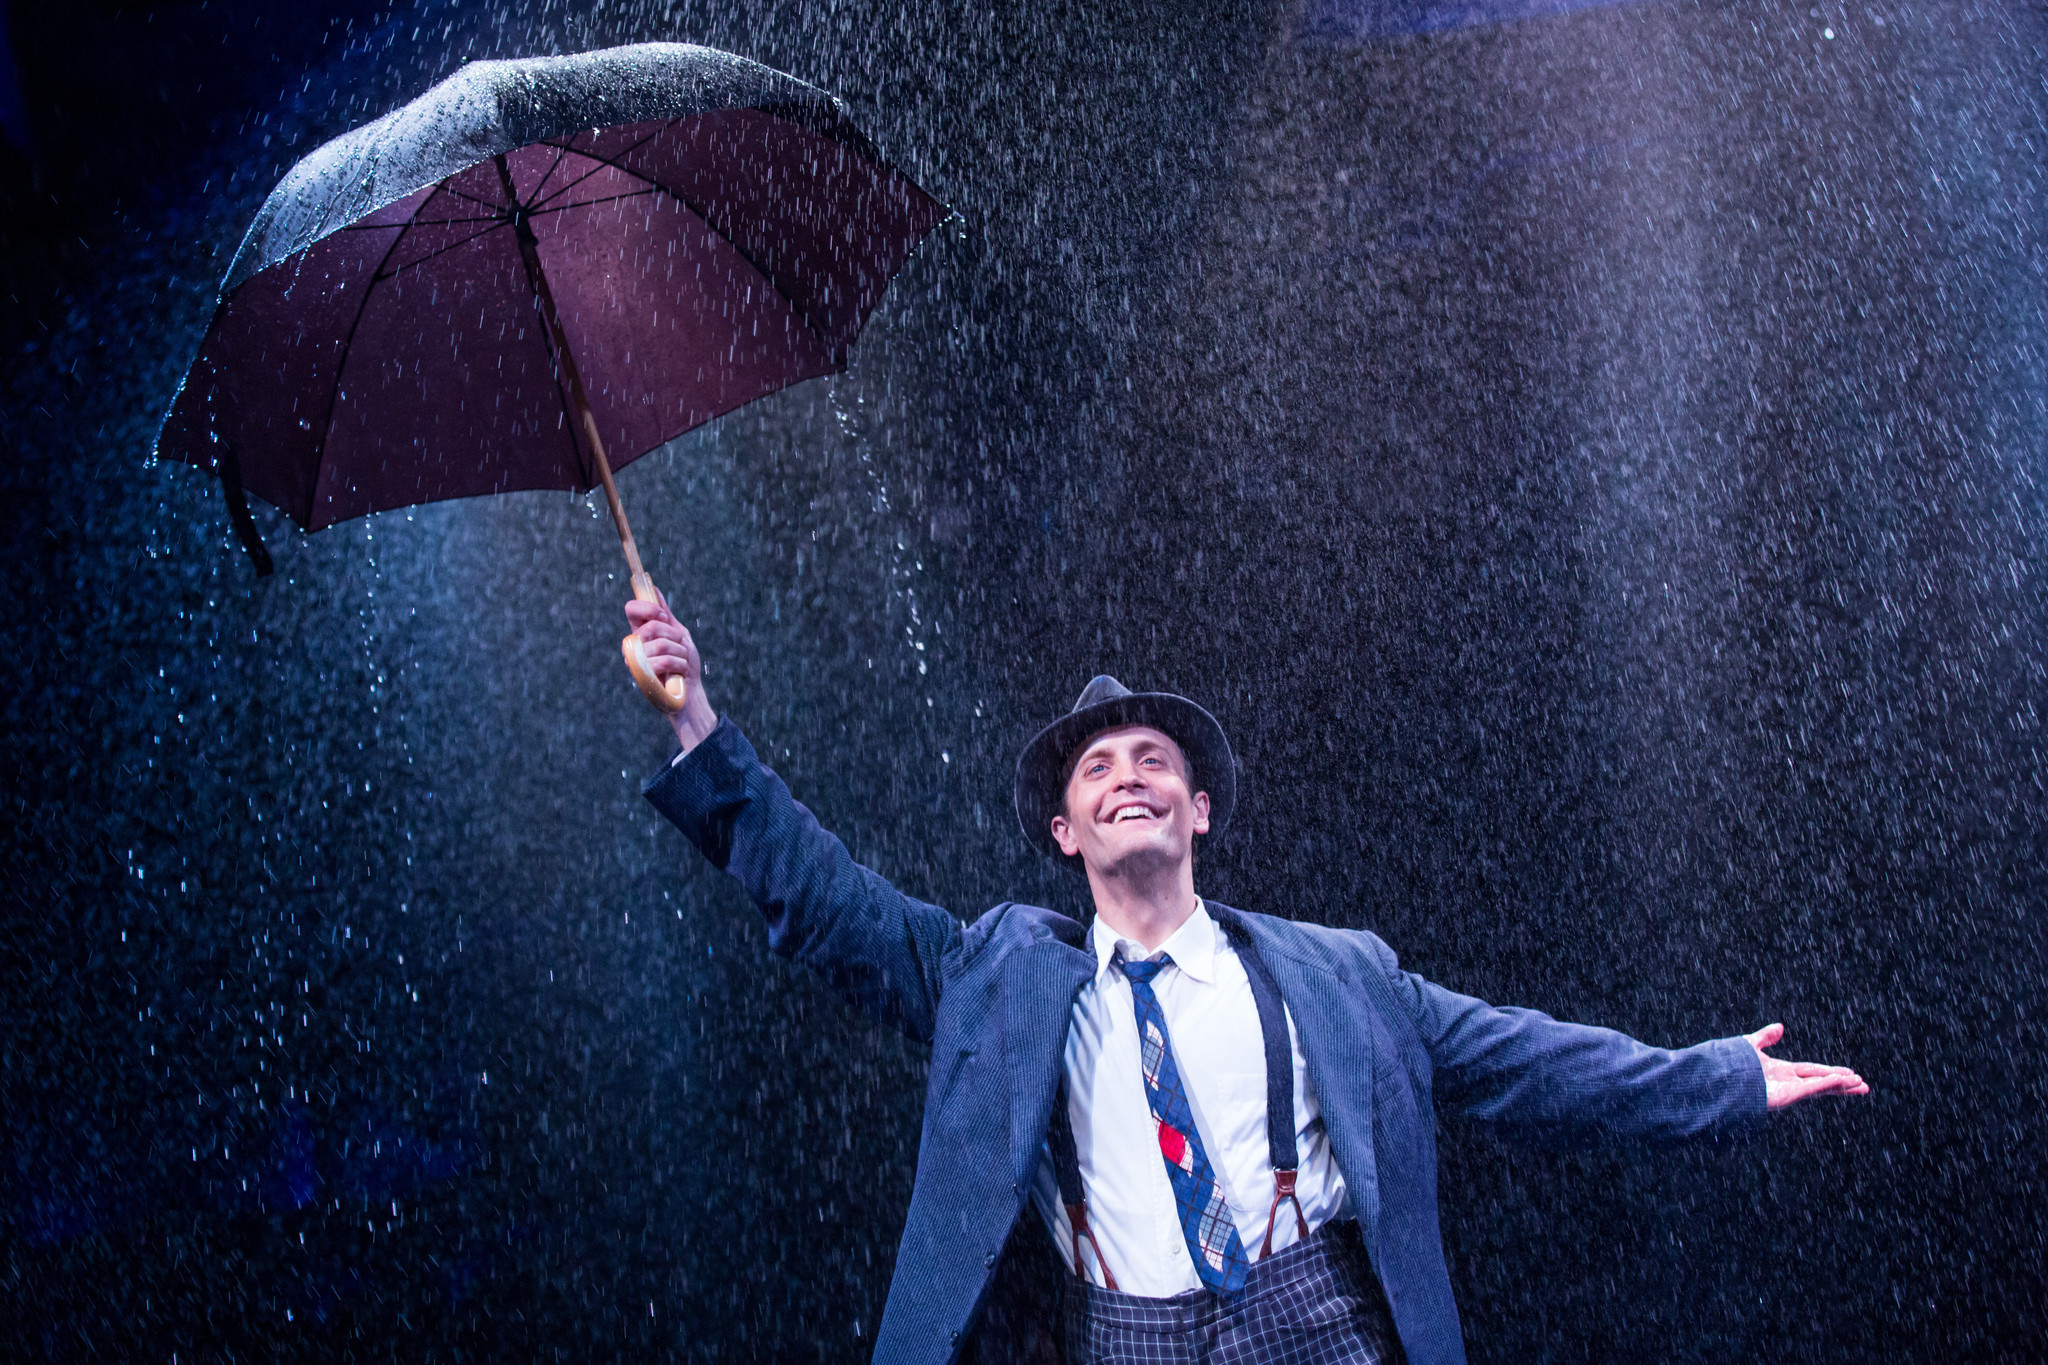 A happy day singing in the rain on the ballfield and at the Marriott  Chicago Tribune